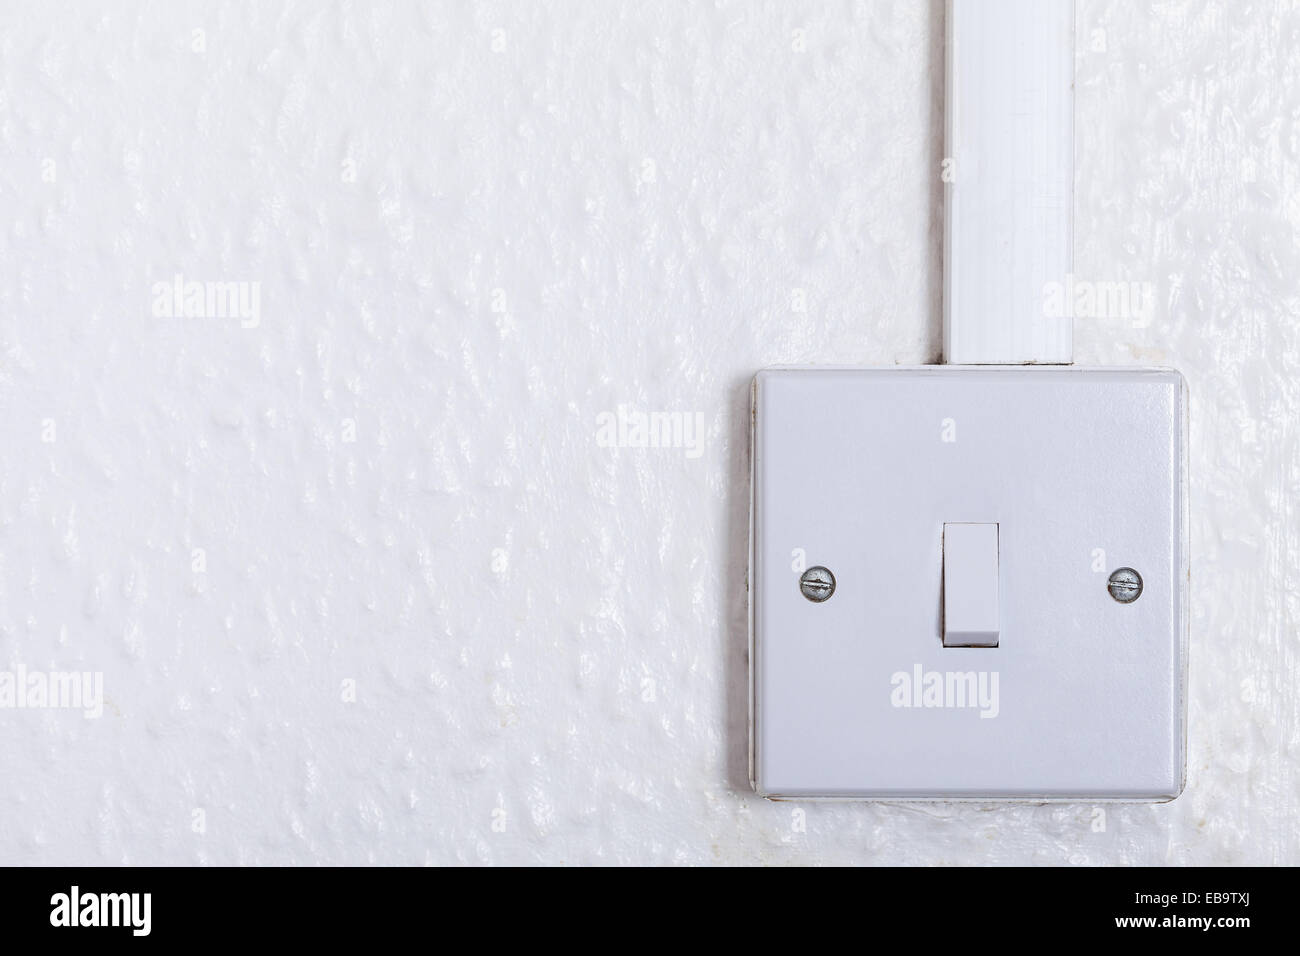 Light switch mounted on white wall with copy space old square box light switch mounted on white wall with copy space old square box style switch on wood chip wall paper background aloadofball